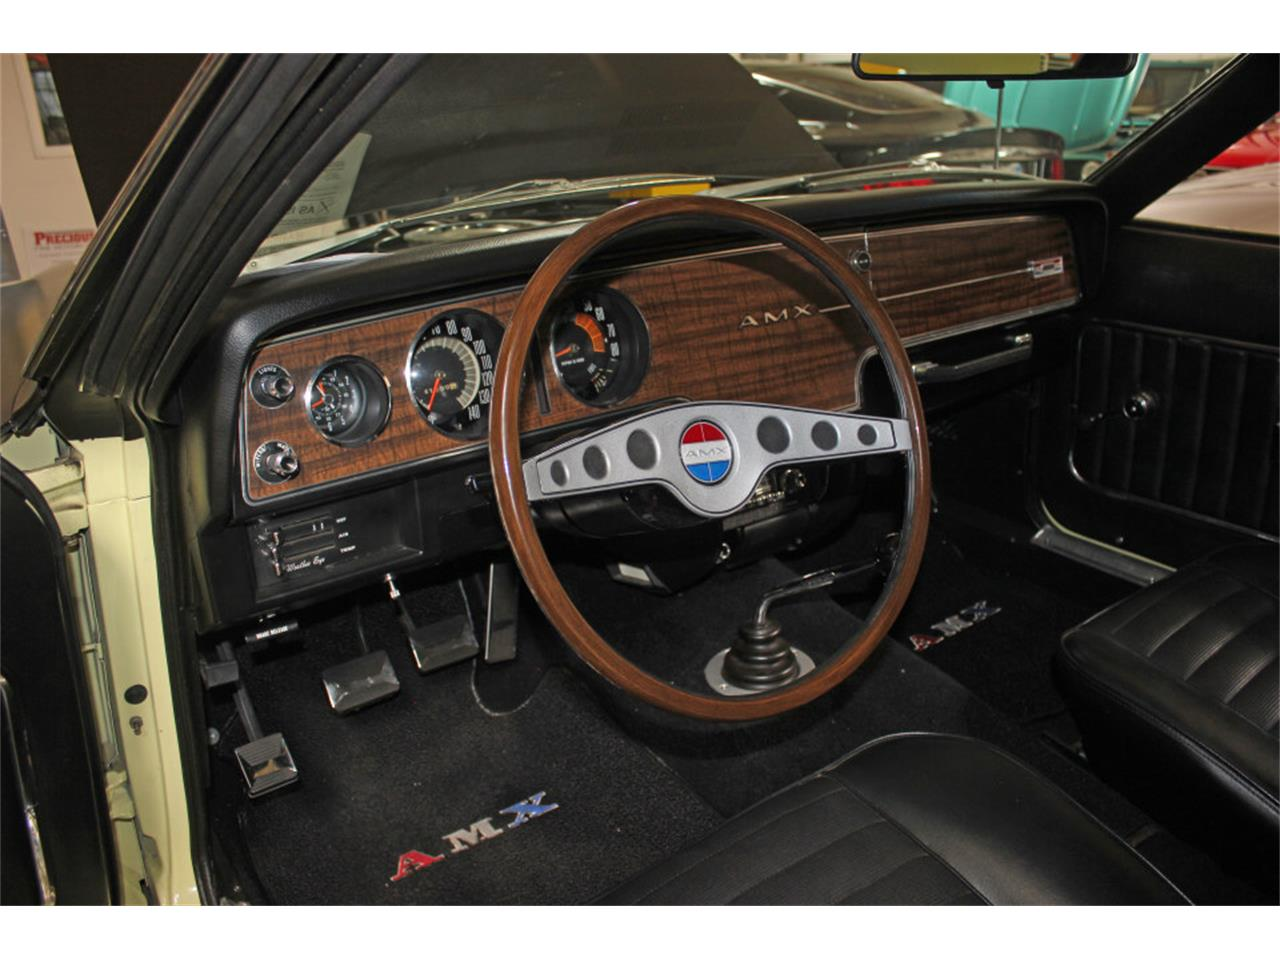 Large Picture of Classic '70 AMC AMX located in San Diego  California - $59,500.00 Offered by Precious Metals - QCFB